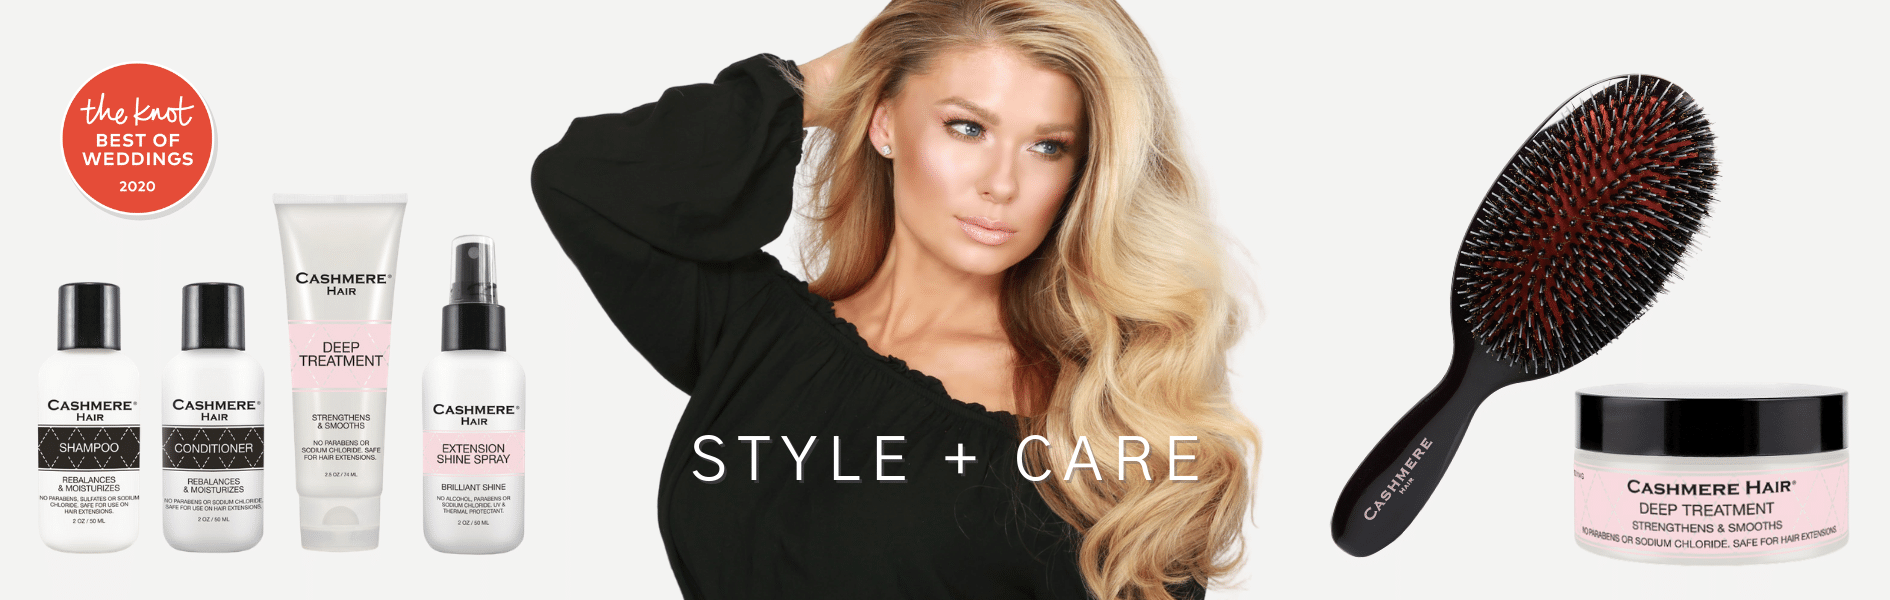 style-and-care-cashmere-hair-extensions.png